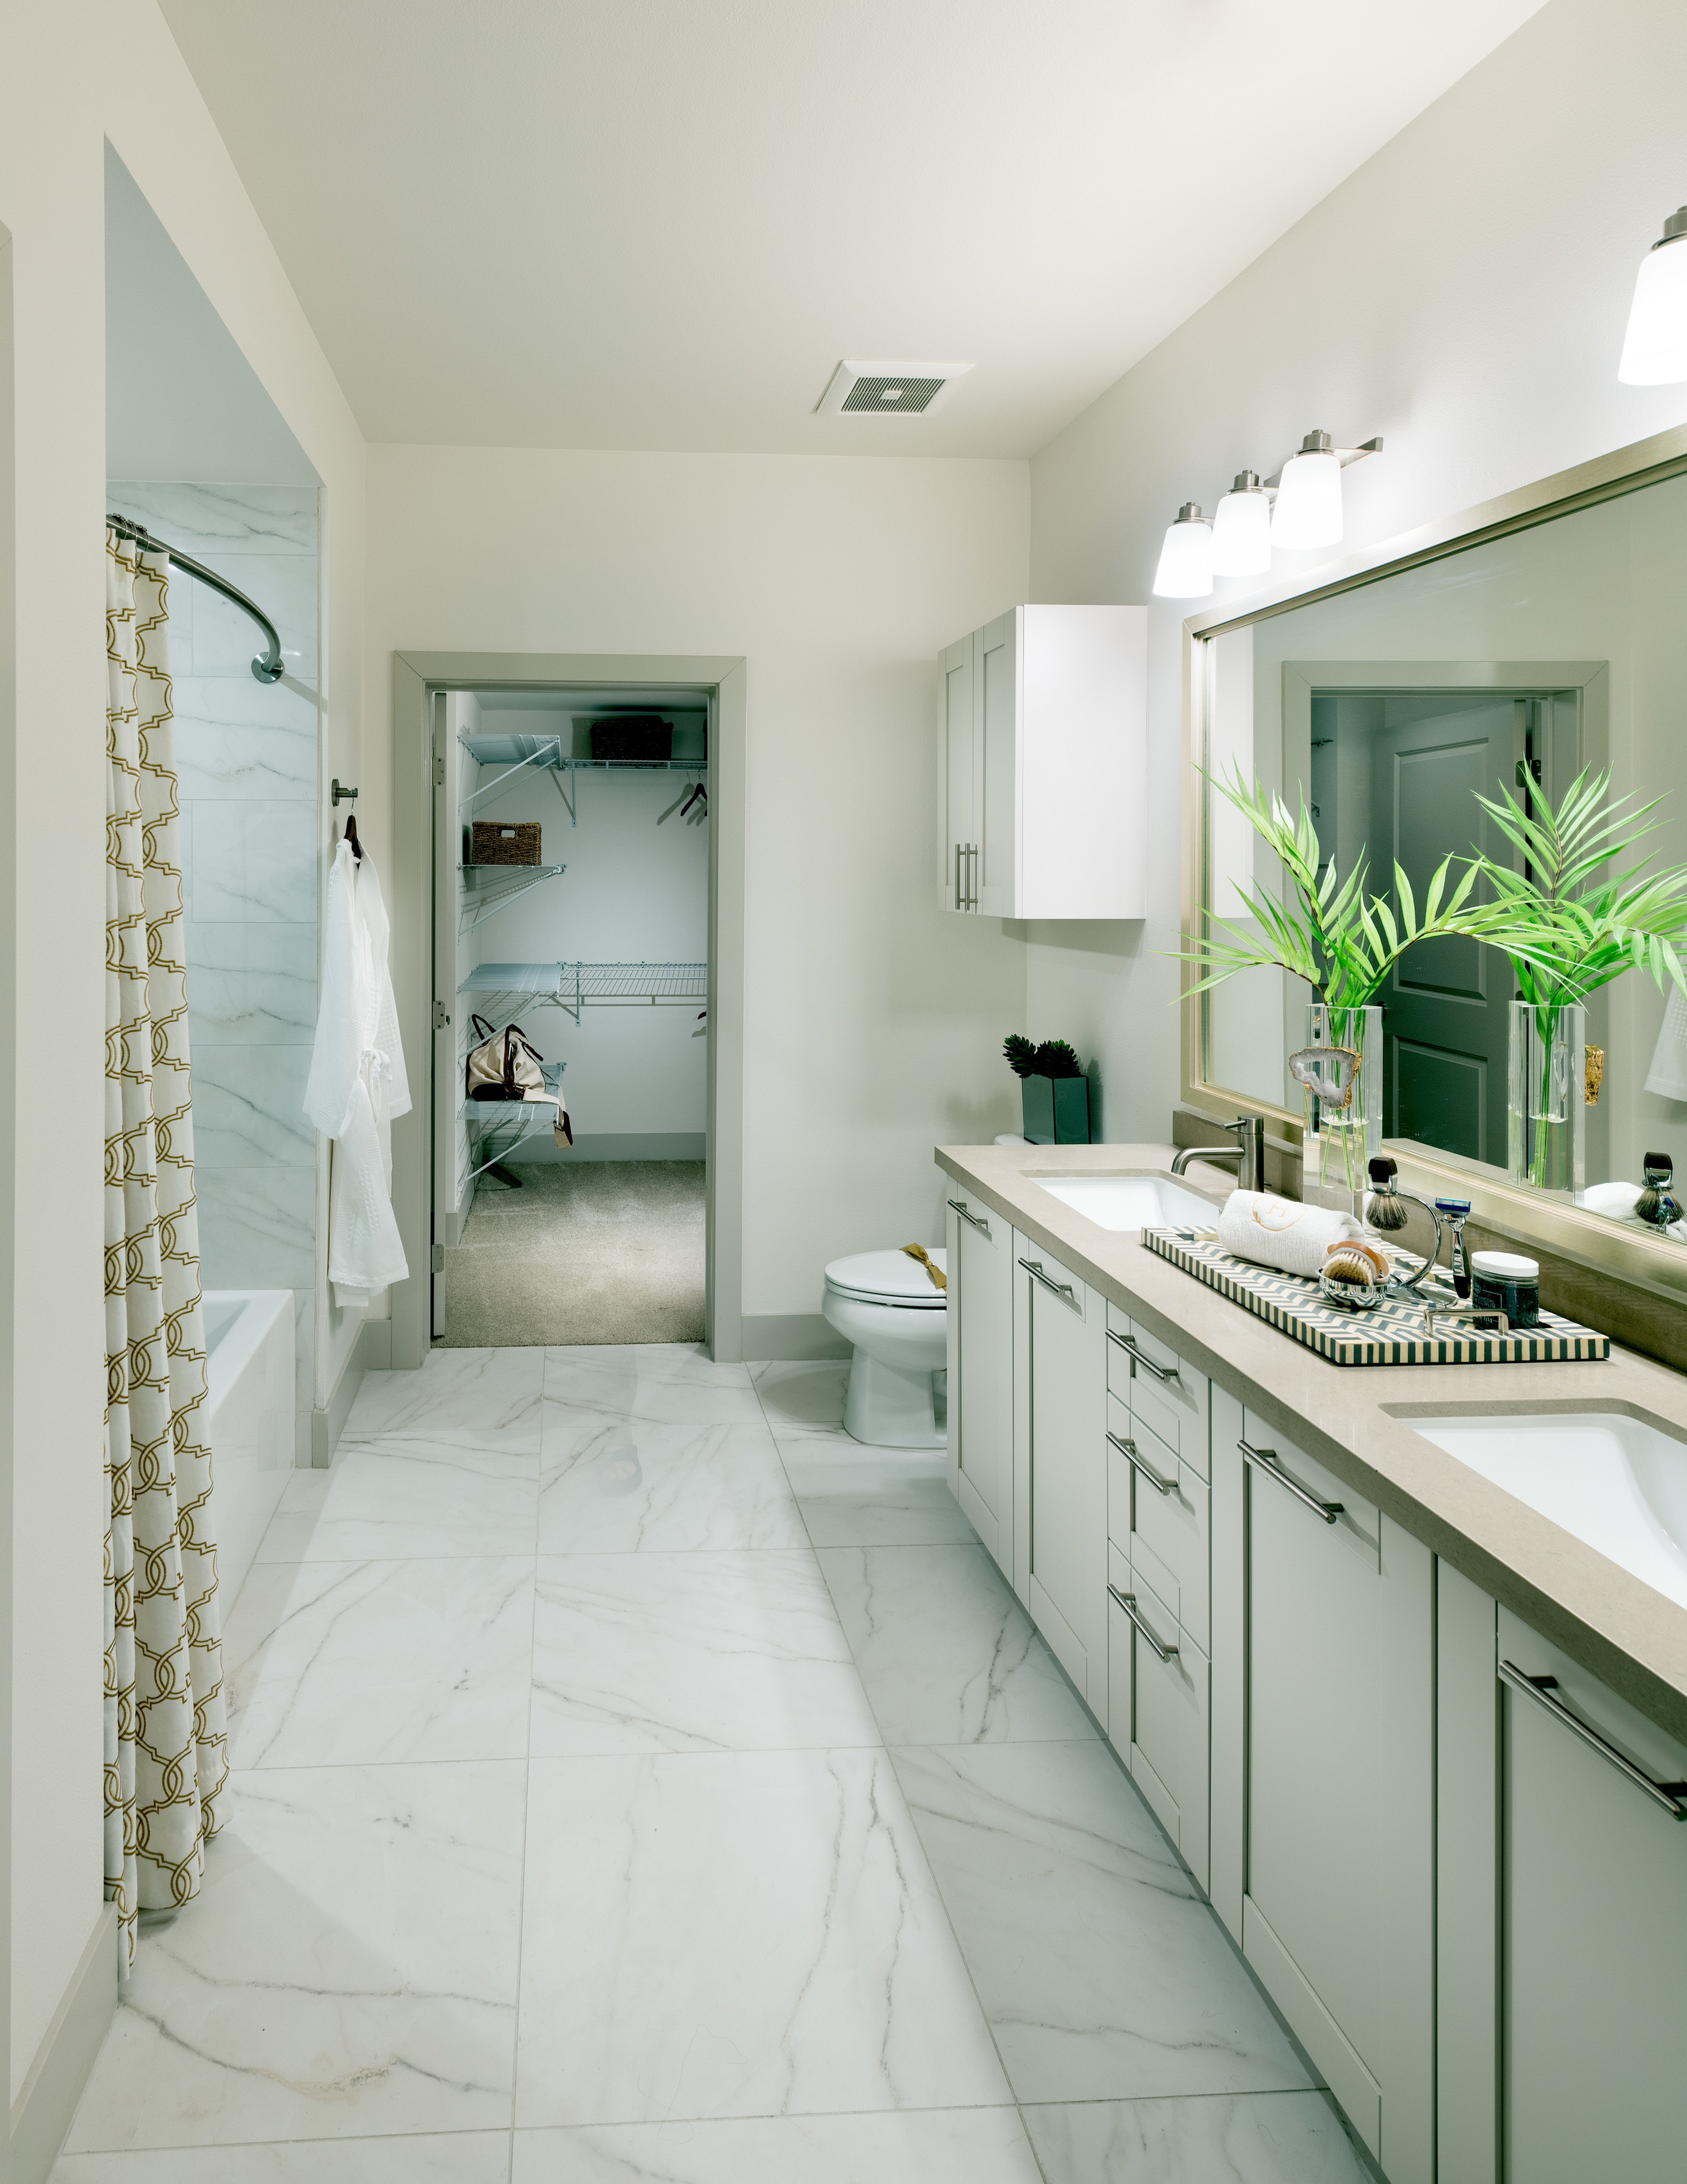 Image of Spa-inspired bathrooms with large soaking tub for Hanover Broadway